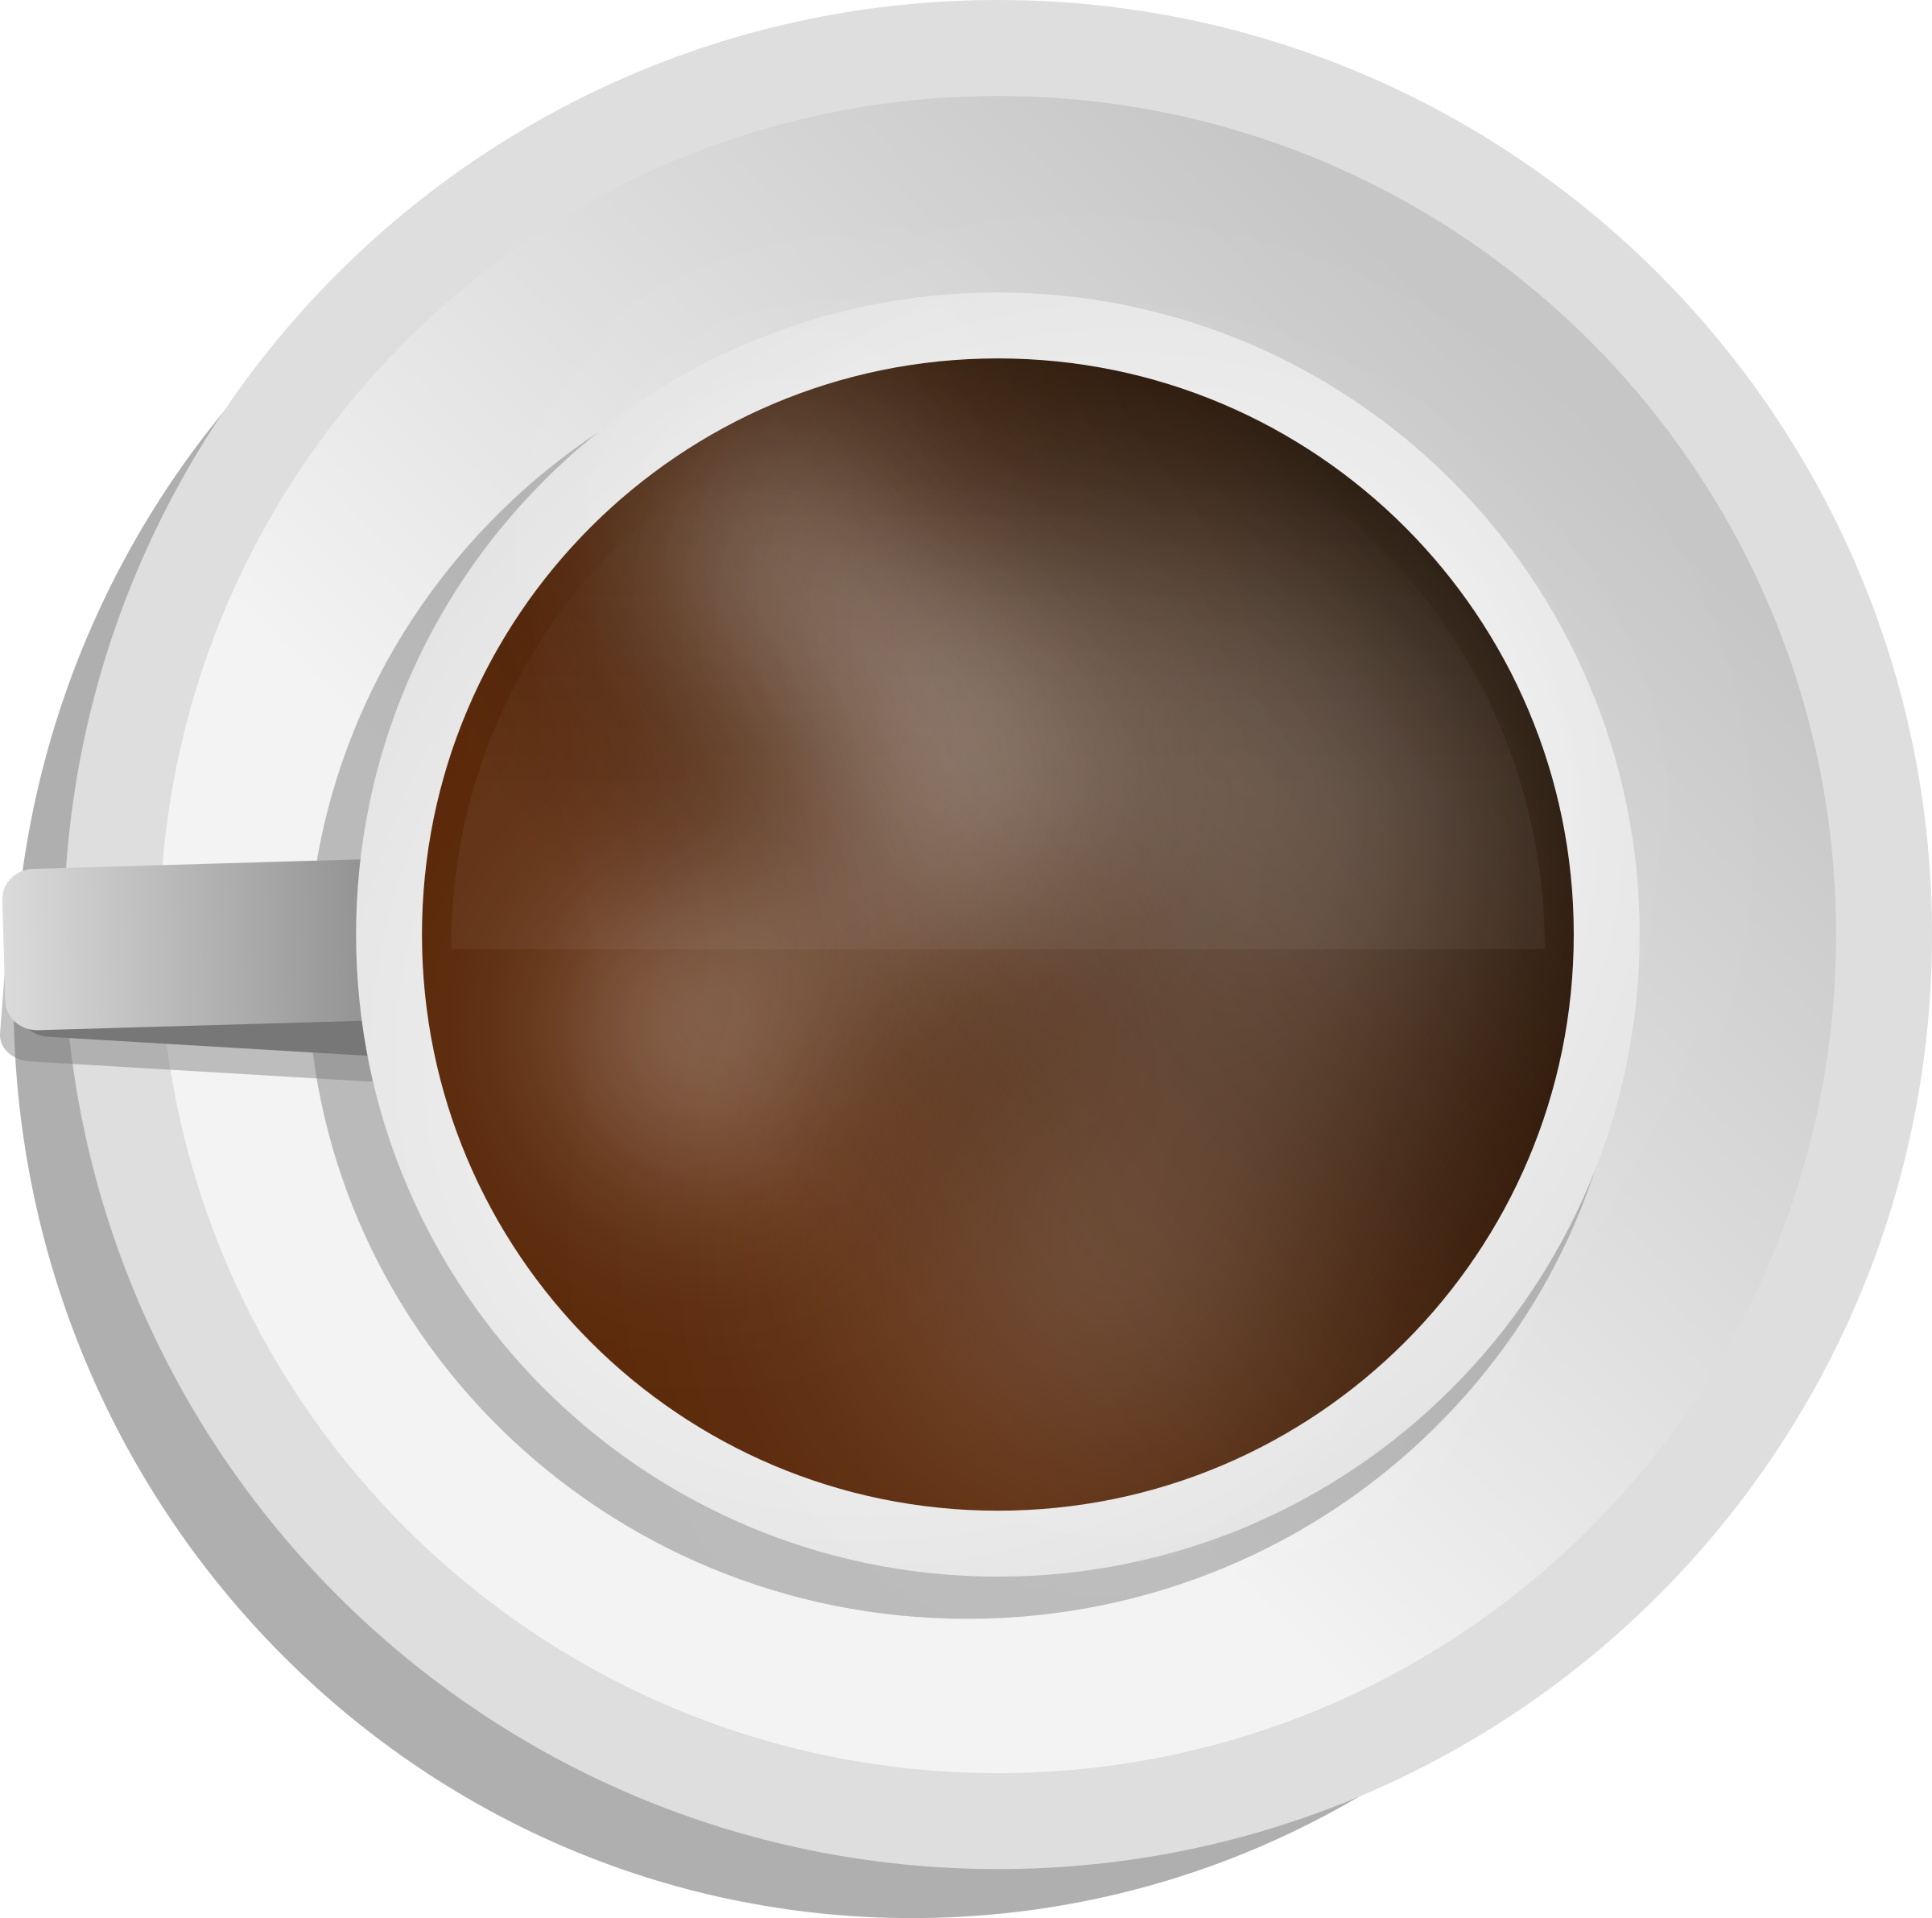 Coffee top view png. Realistic cup icons free